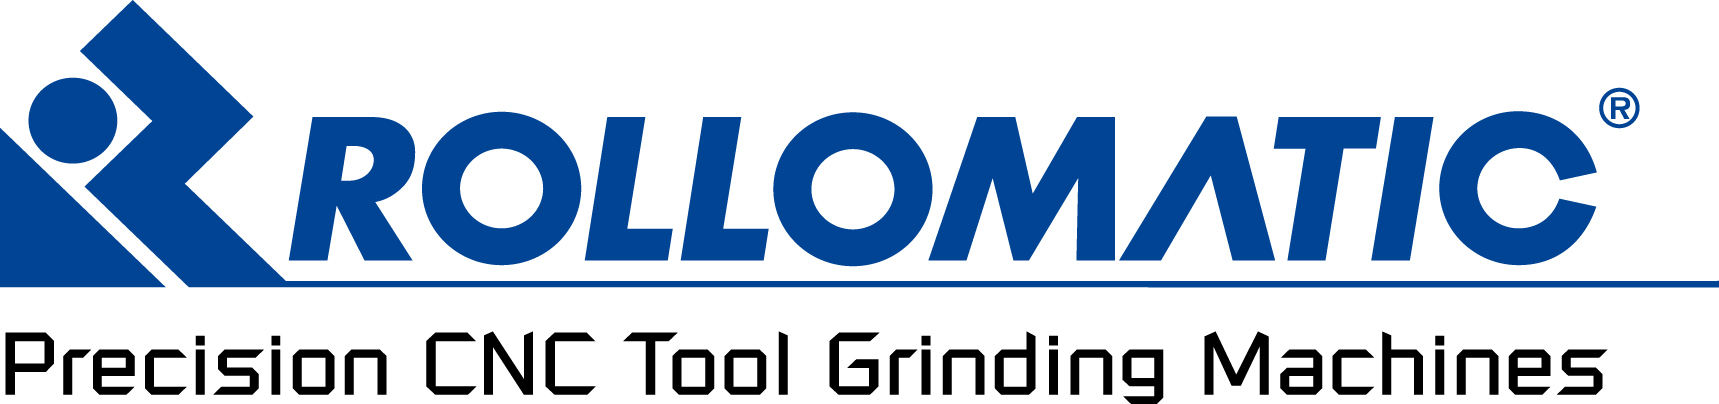 rollomatic Precision CNC tool grinding machines